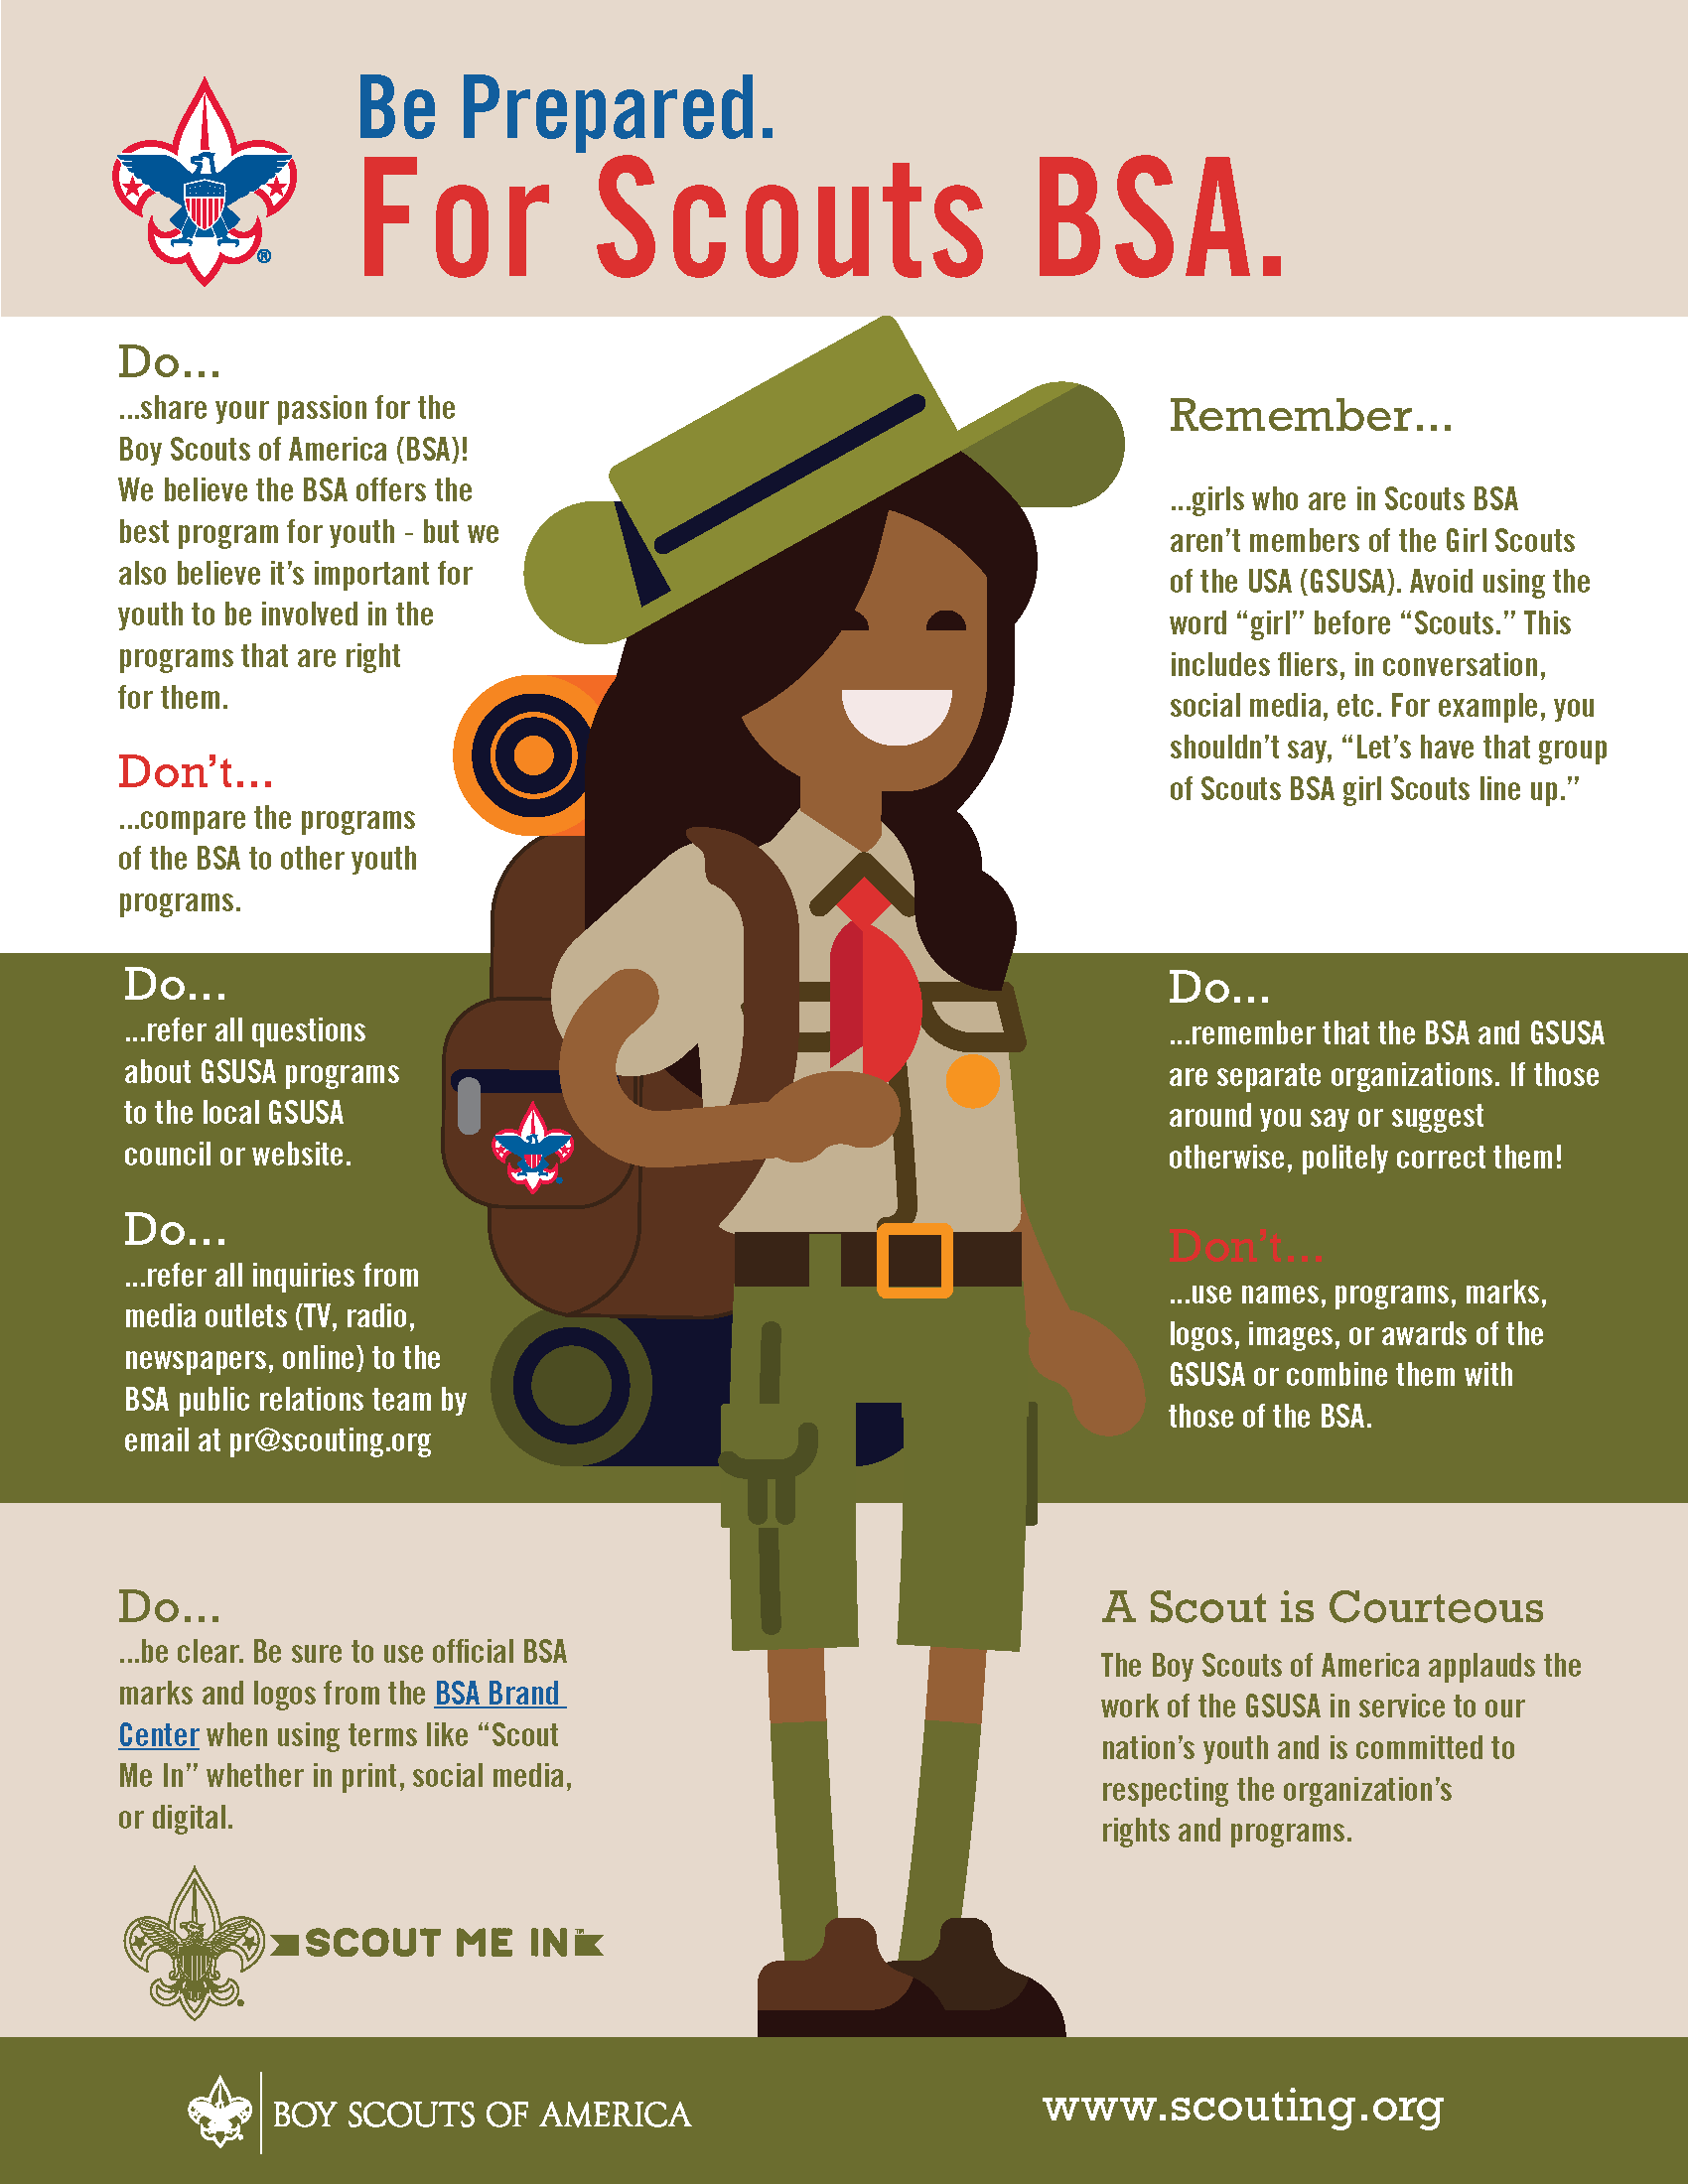 This Infographic Shows The Right Way To Refer To Girls Who